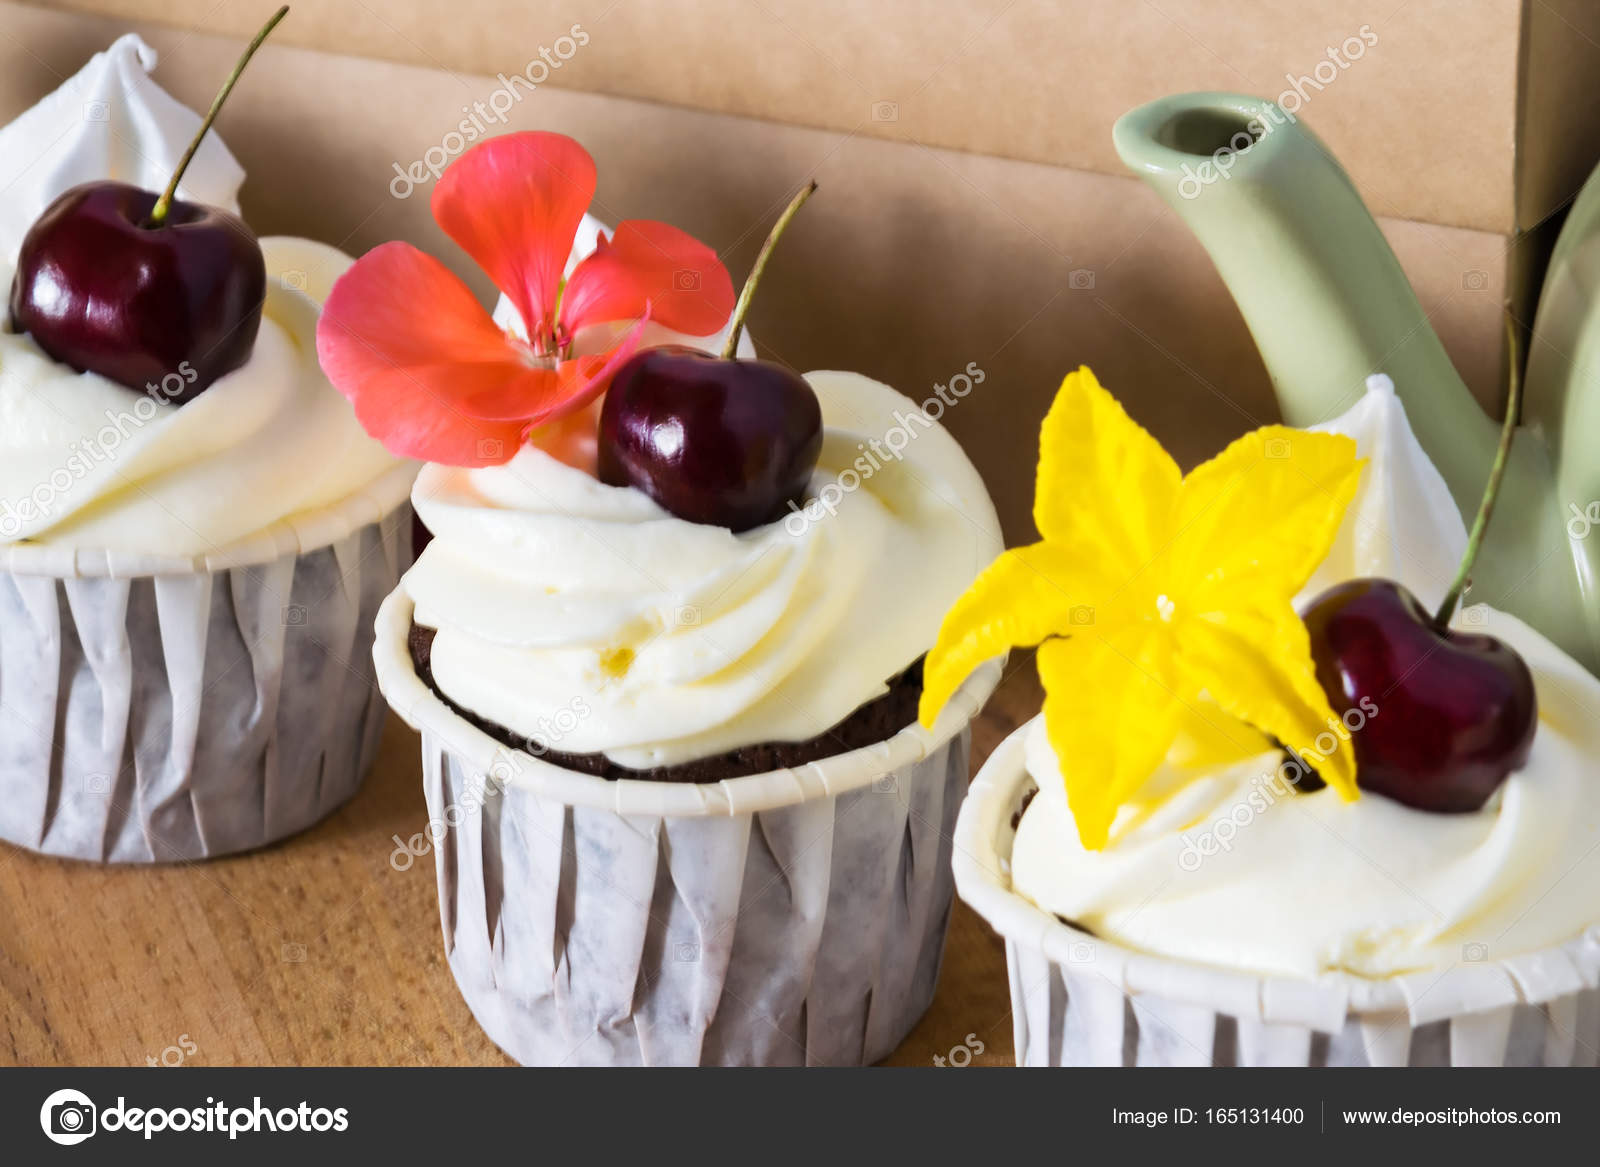 Three Beautiful Cakes With Cherries And Flowers On A Teapot